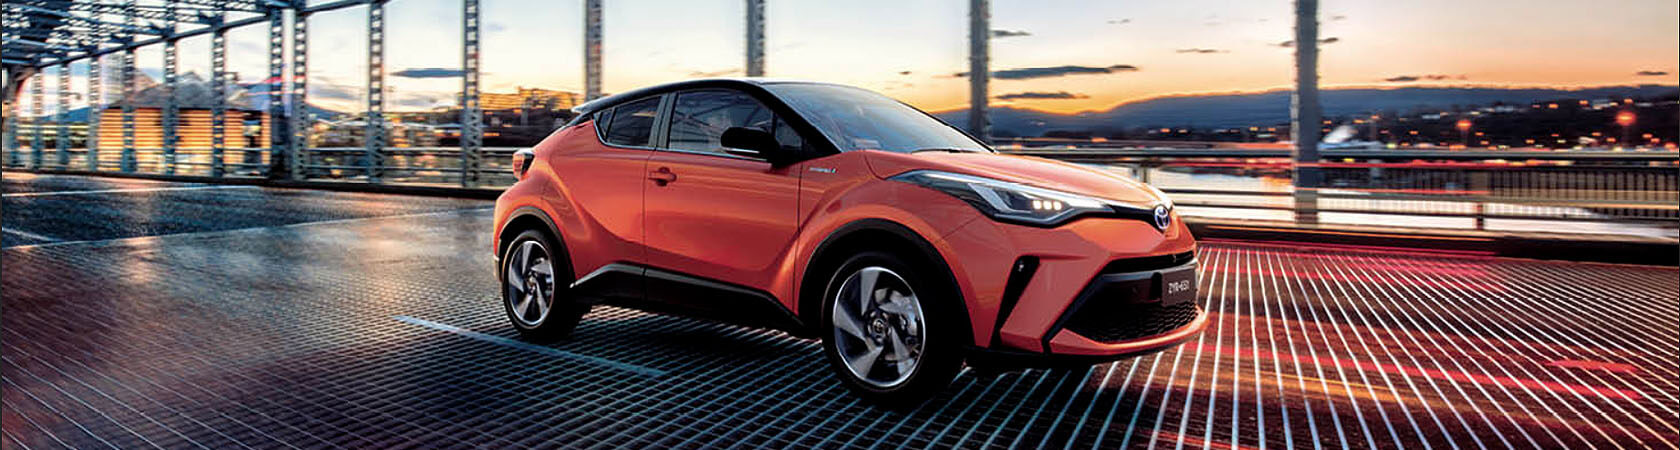 Bridge Toyota C-HR